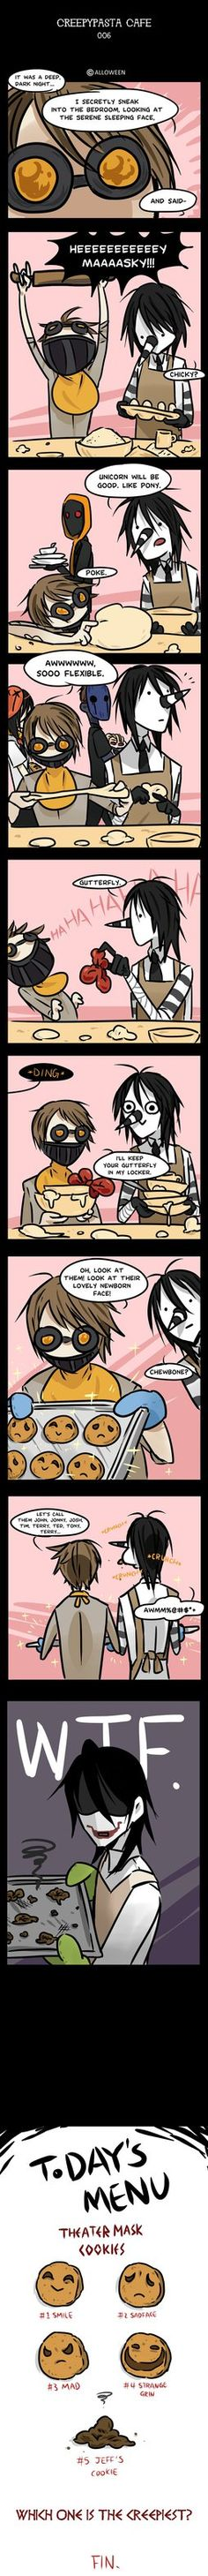 Creepypasta Cafe 006